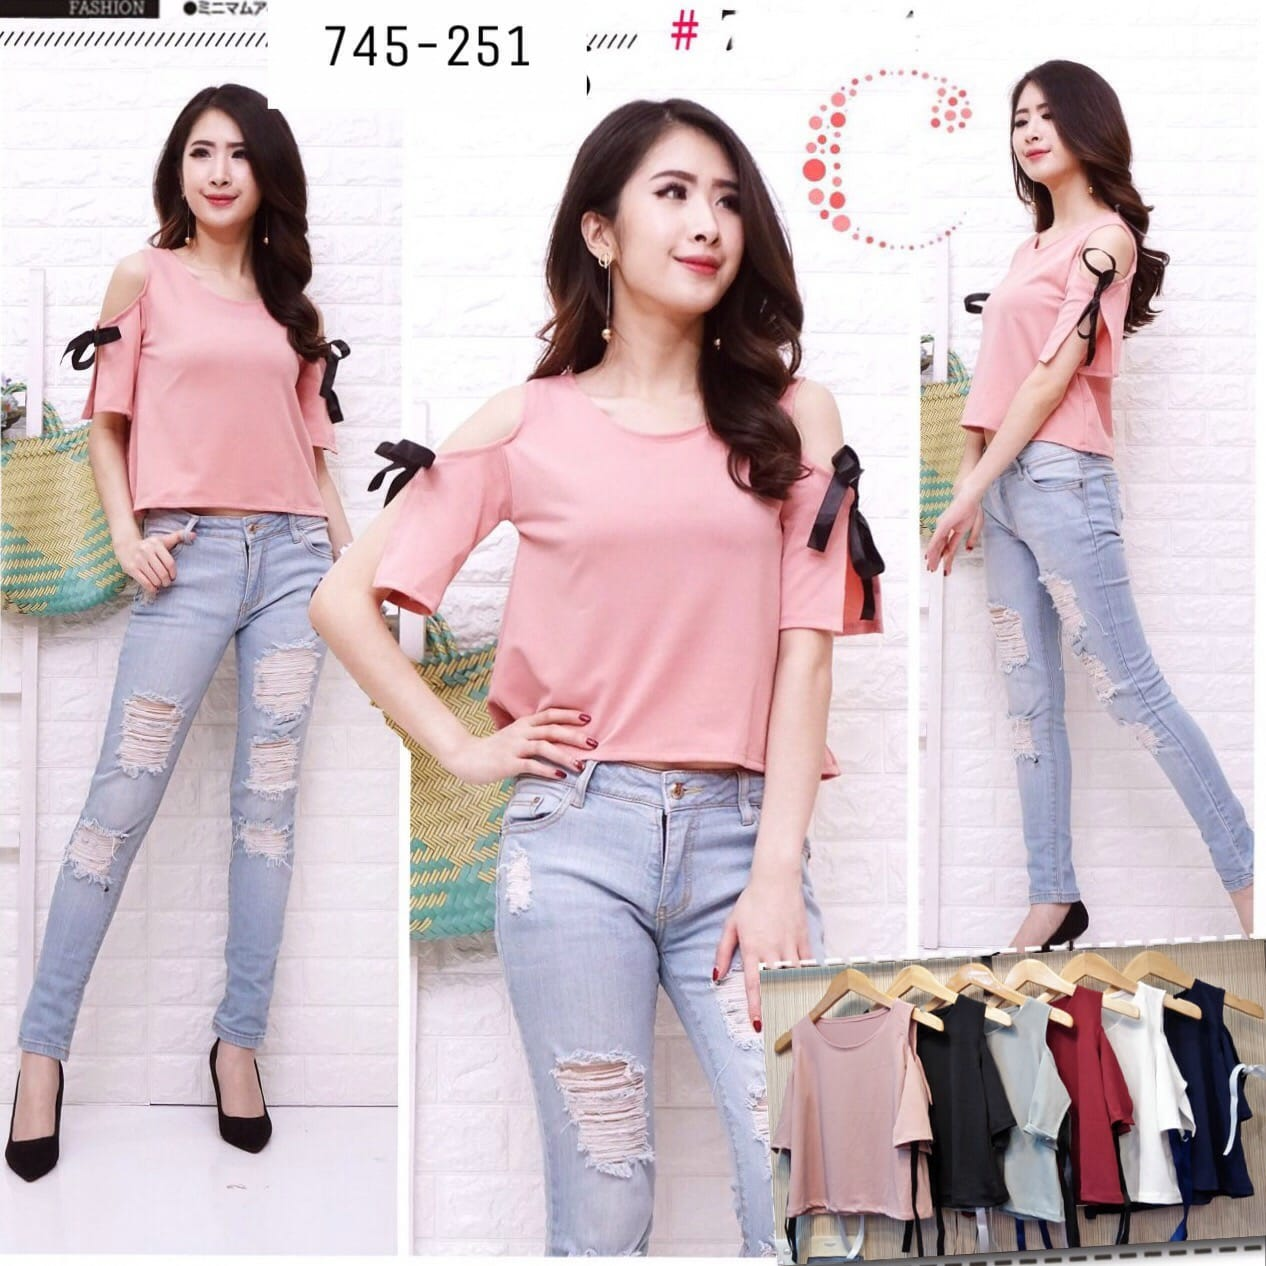 Shoulder tie tops 745-251